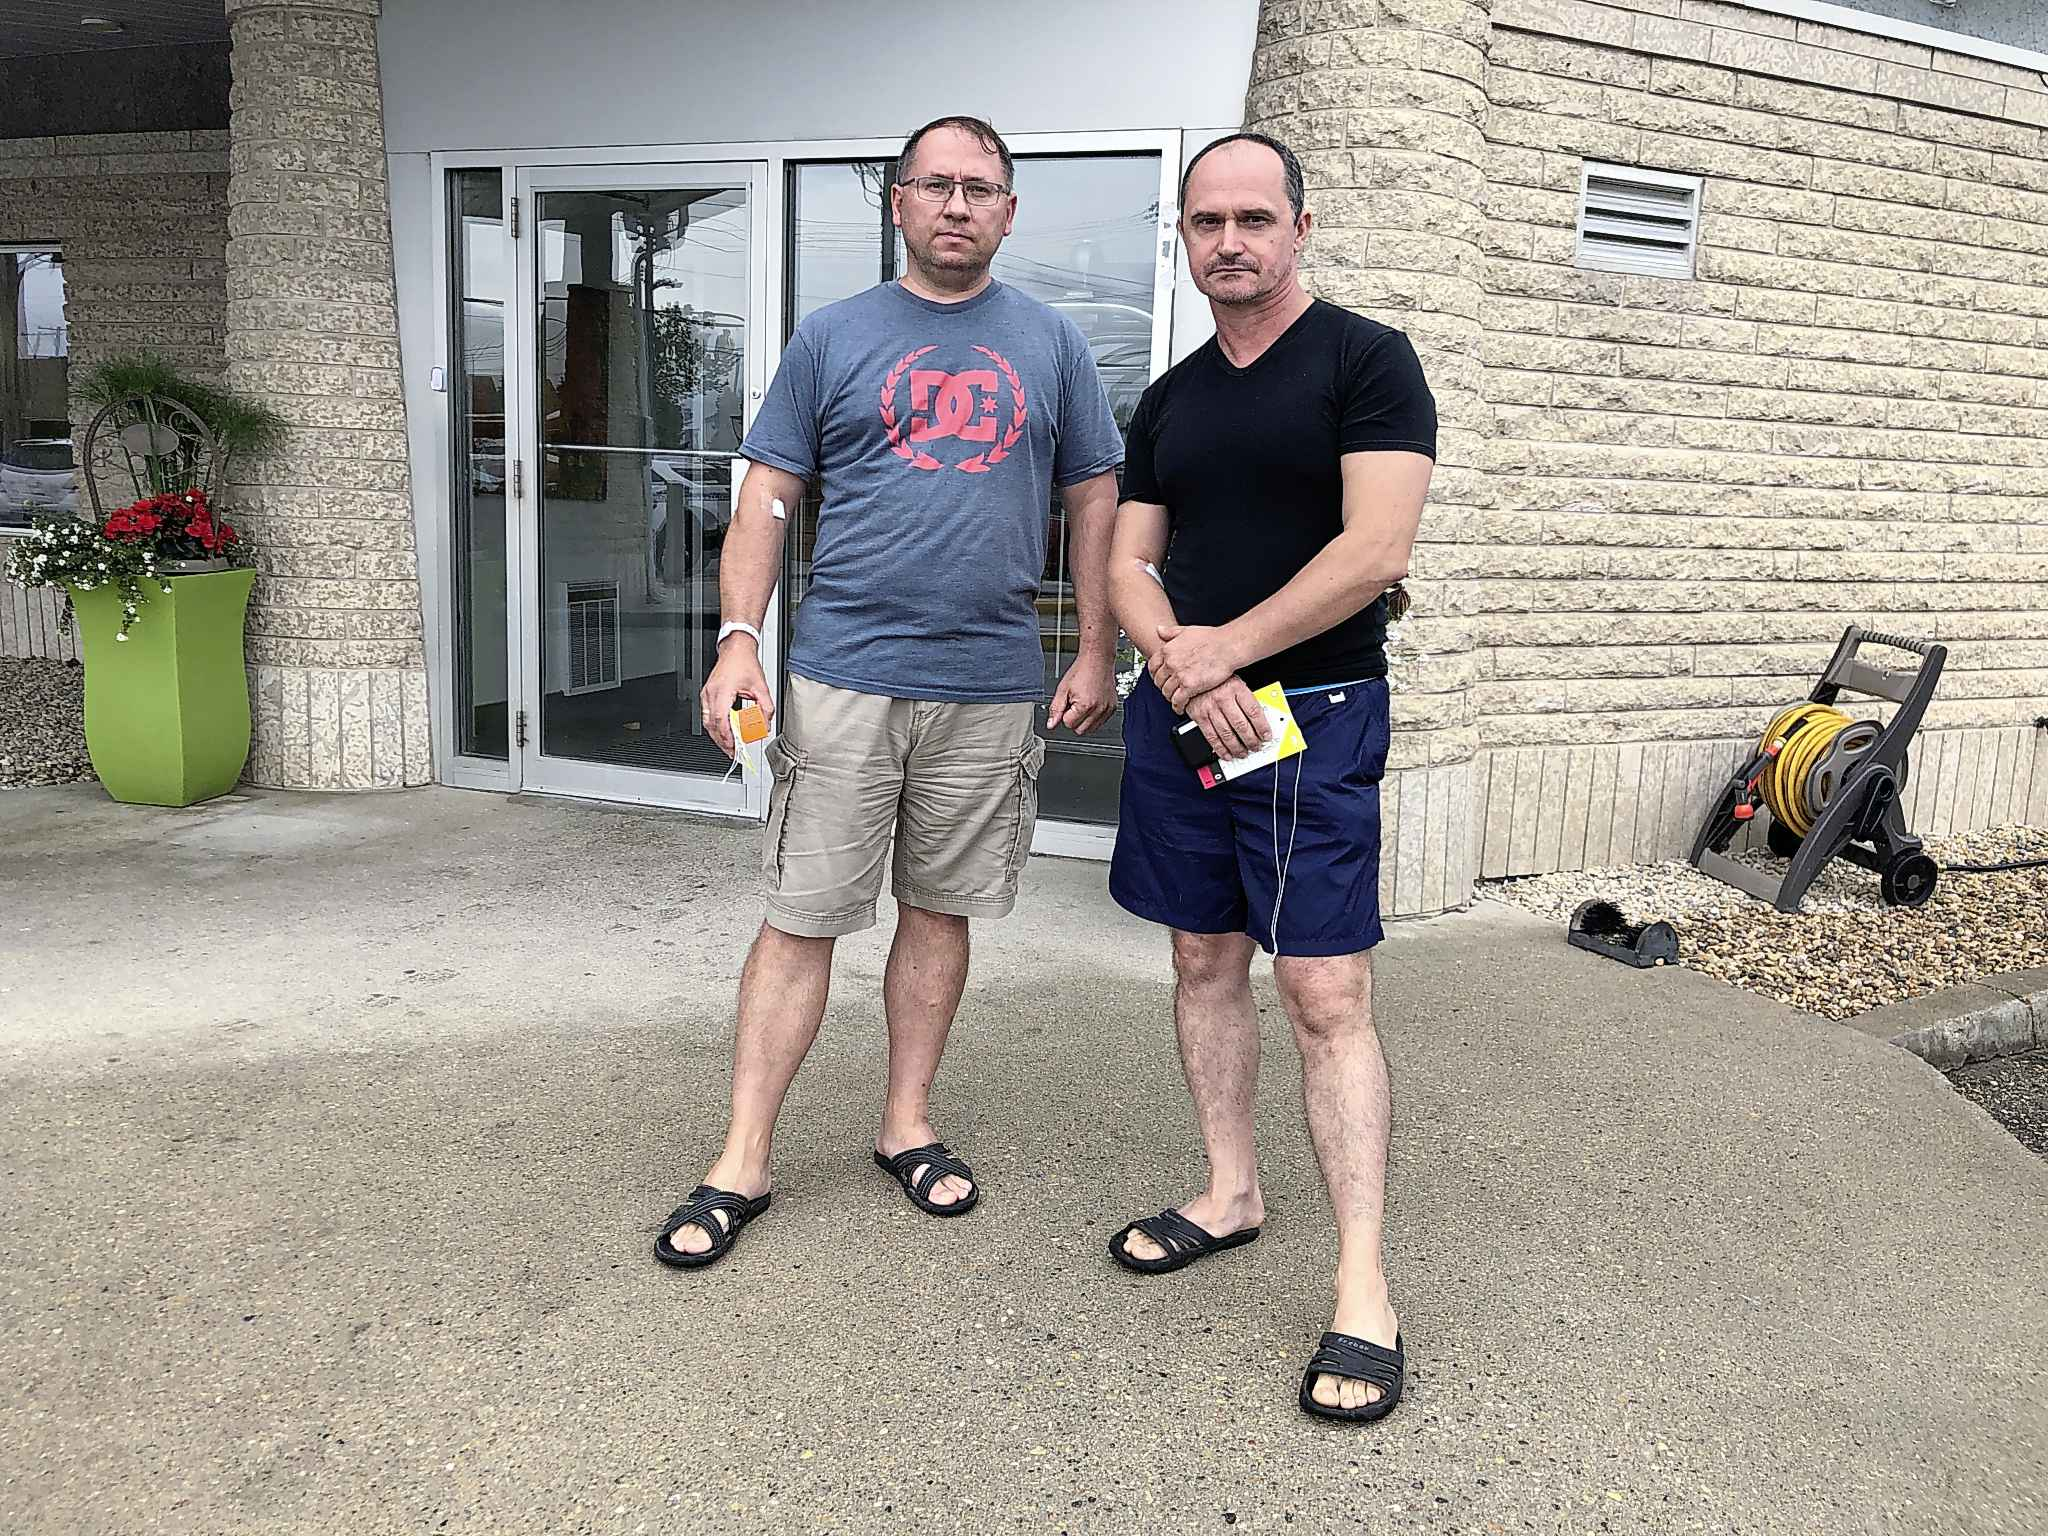 Sergiy Bolshakov and Oleg Lugovsky plan to continue their stay at the Super 8 despite the carbon monoxide incident. (Tessa Vanderhart / Winnipeg Free Press)